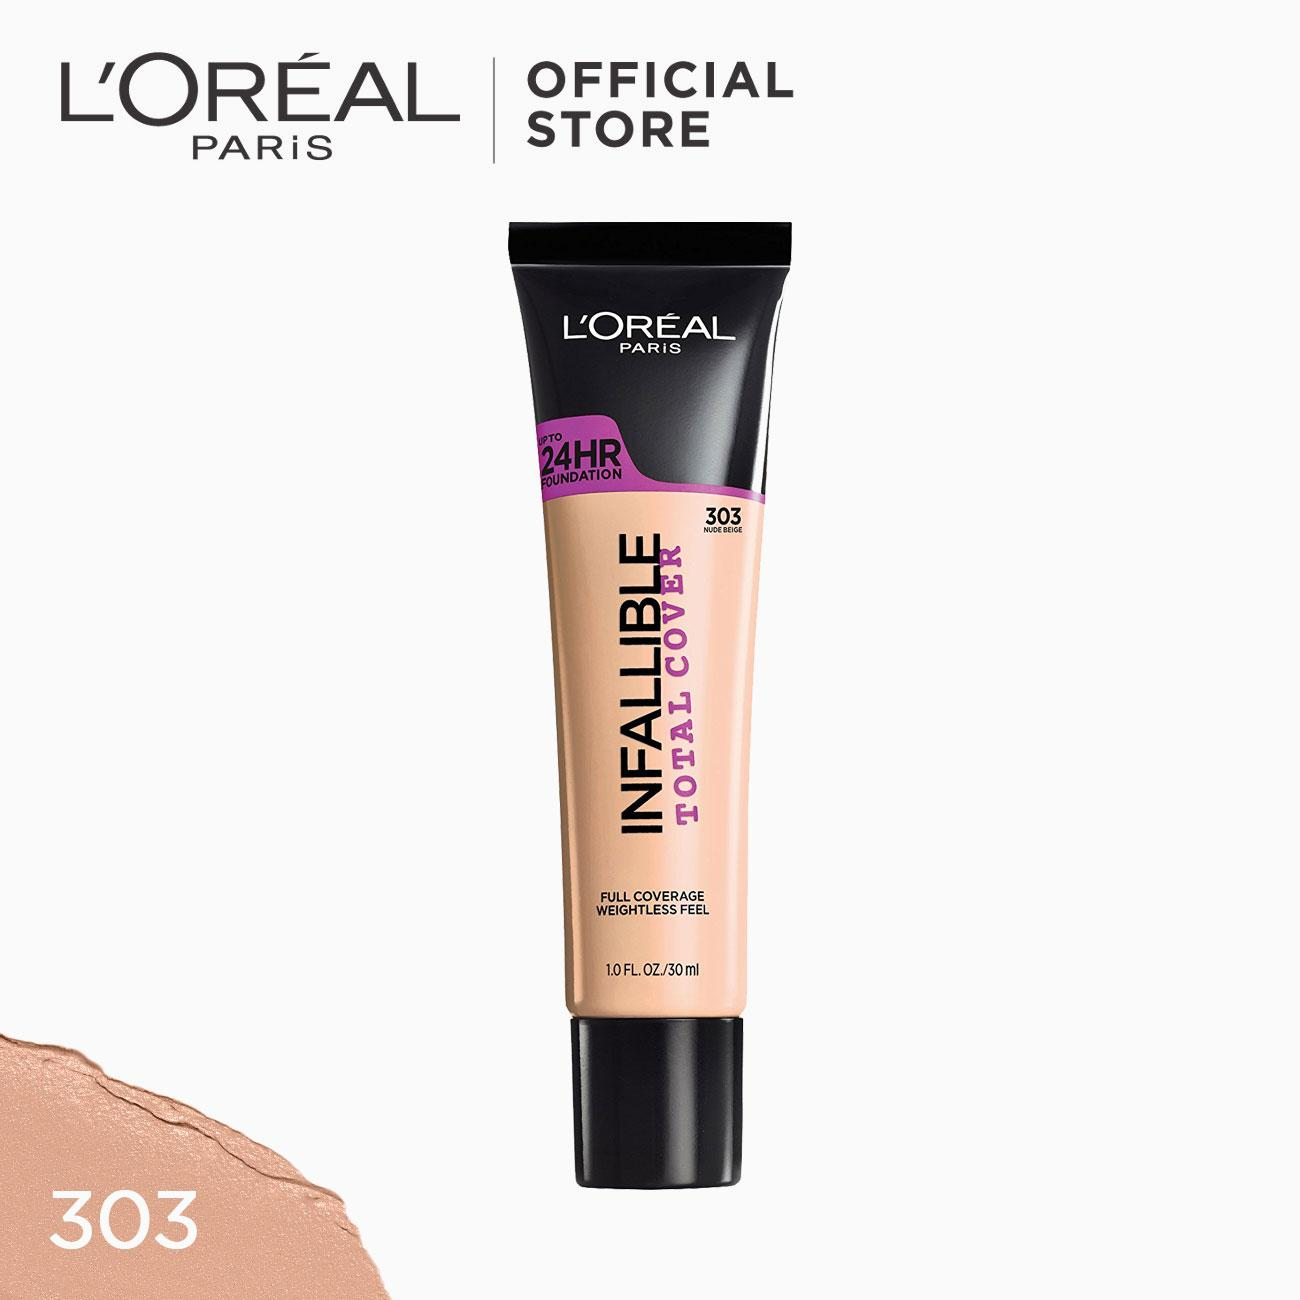 Infallible Total Cover Liquid Foundation - 303 Nude Beige [#GotItCovered 24HR Full Coverage] by LOréal Paris Philippines